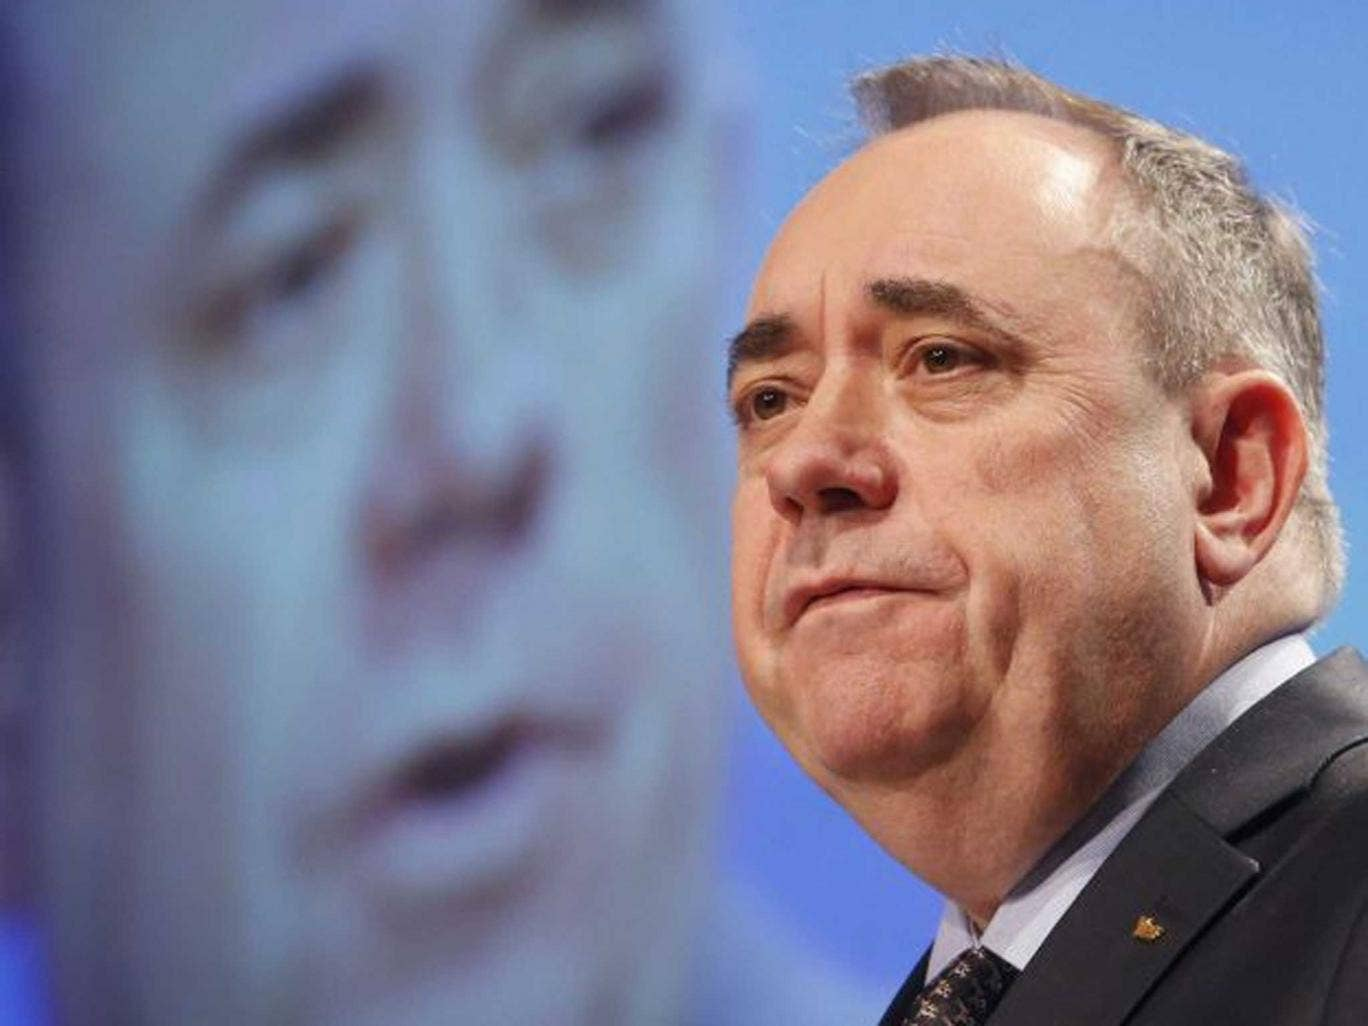 No political games: Alex Salmond, champion of the Scottish independence referendum